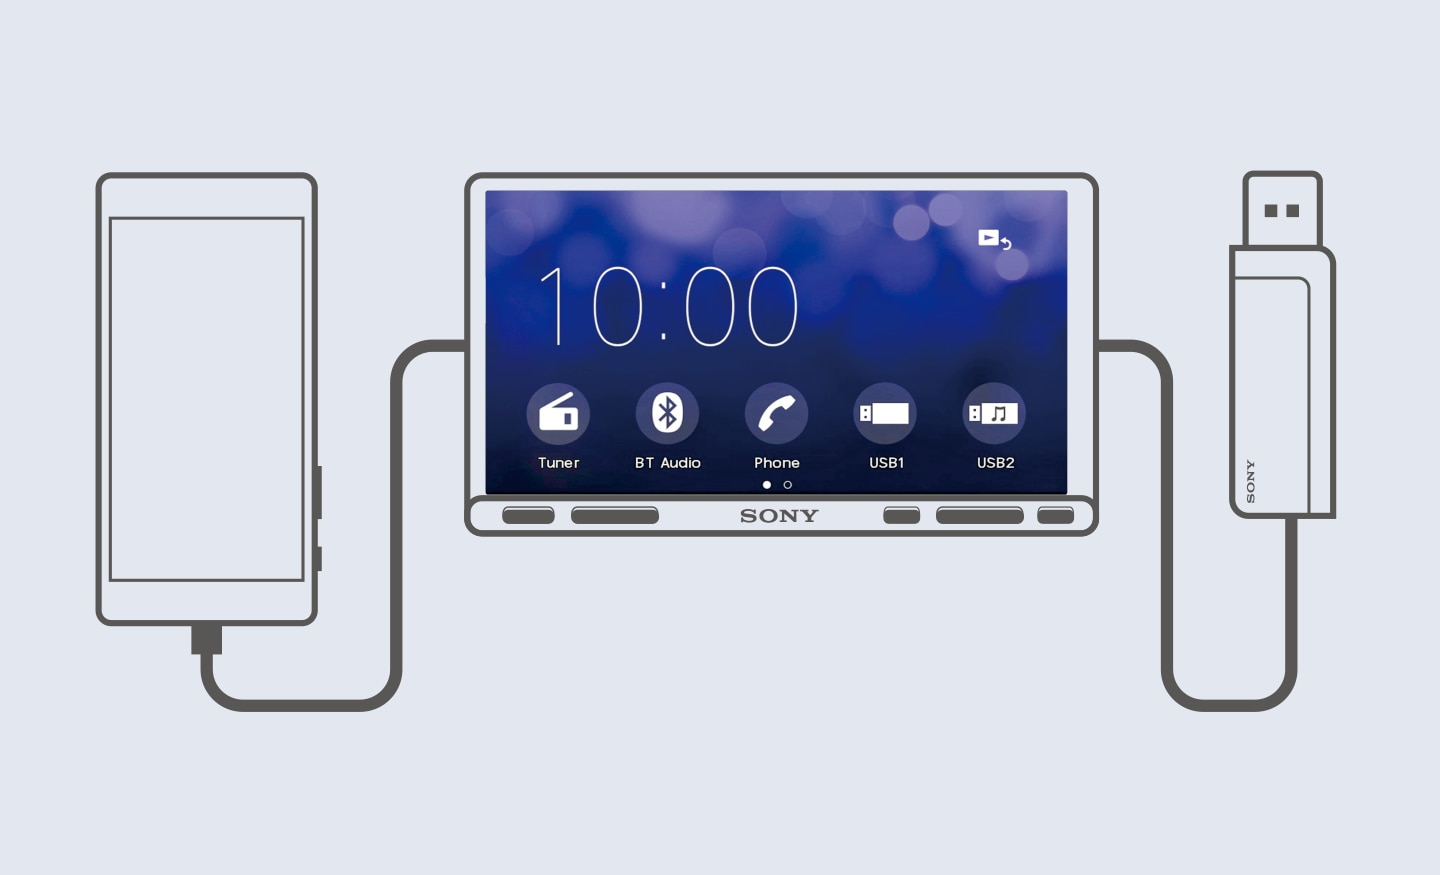 Illustration showing devices connected to XAV-AX7000 via dual USB ports